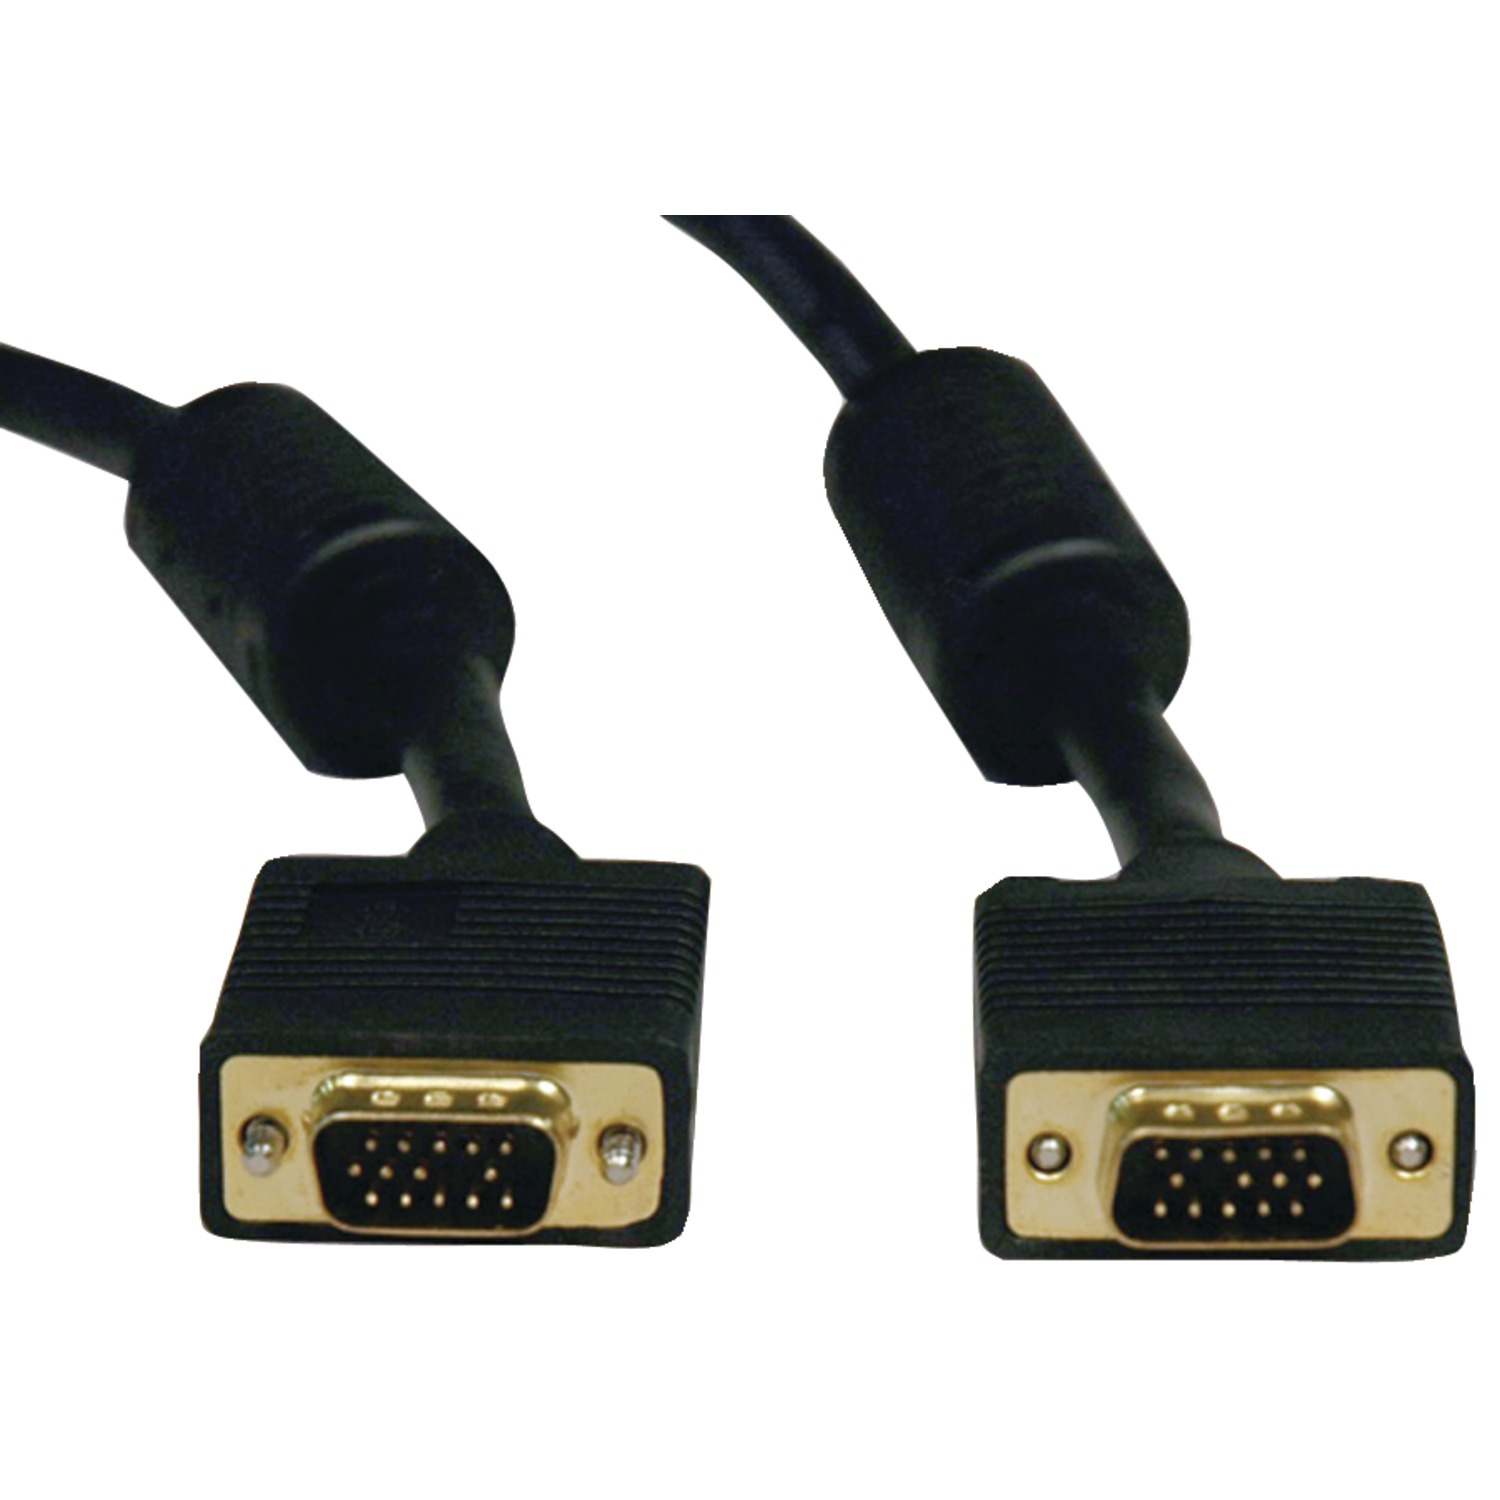 Tripp Lite P502-015 VGA High-Resolution Coaxial Monitor Cable with RGB Coaxial (15ft)